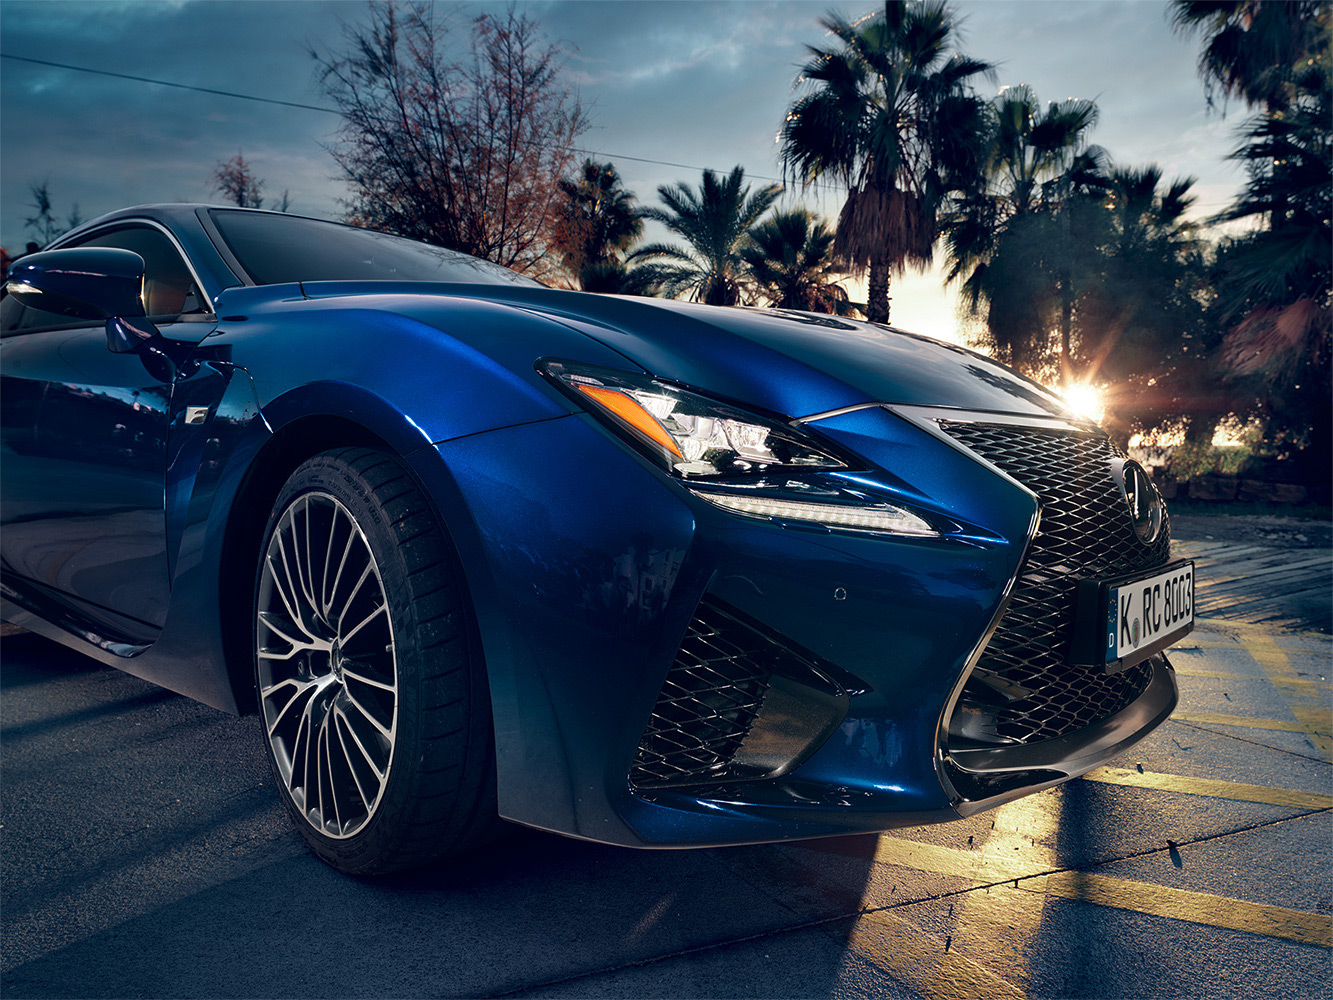 lexus_rc_f_for_gq_germany_anke_luckmann03.jpg